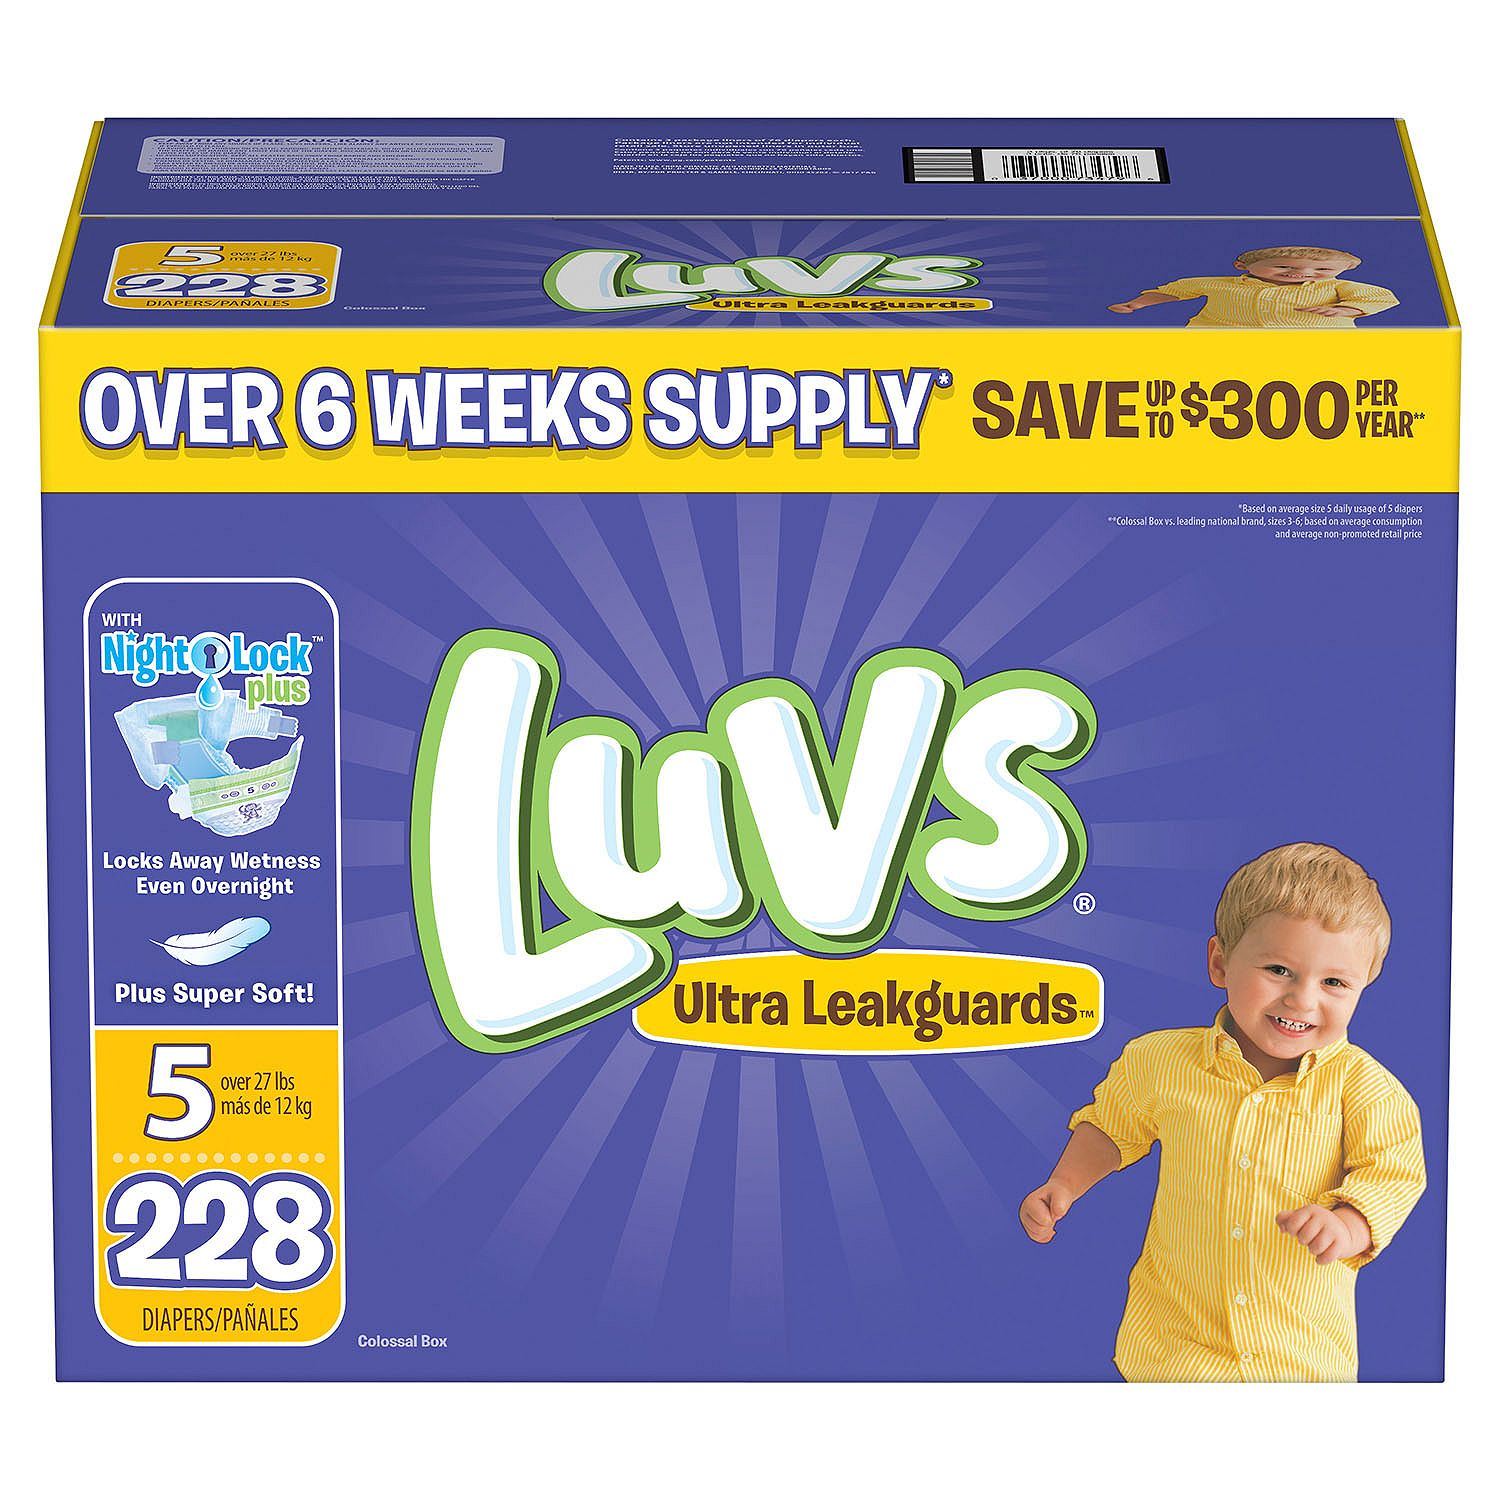 Luvs Ultra Leakguards Diapers Size Size 5 228 ct. Bulk Qty, Free Shipping Comfortable, Soft, No leaking & Good... by Branded Diapers